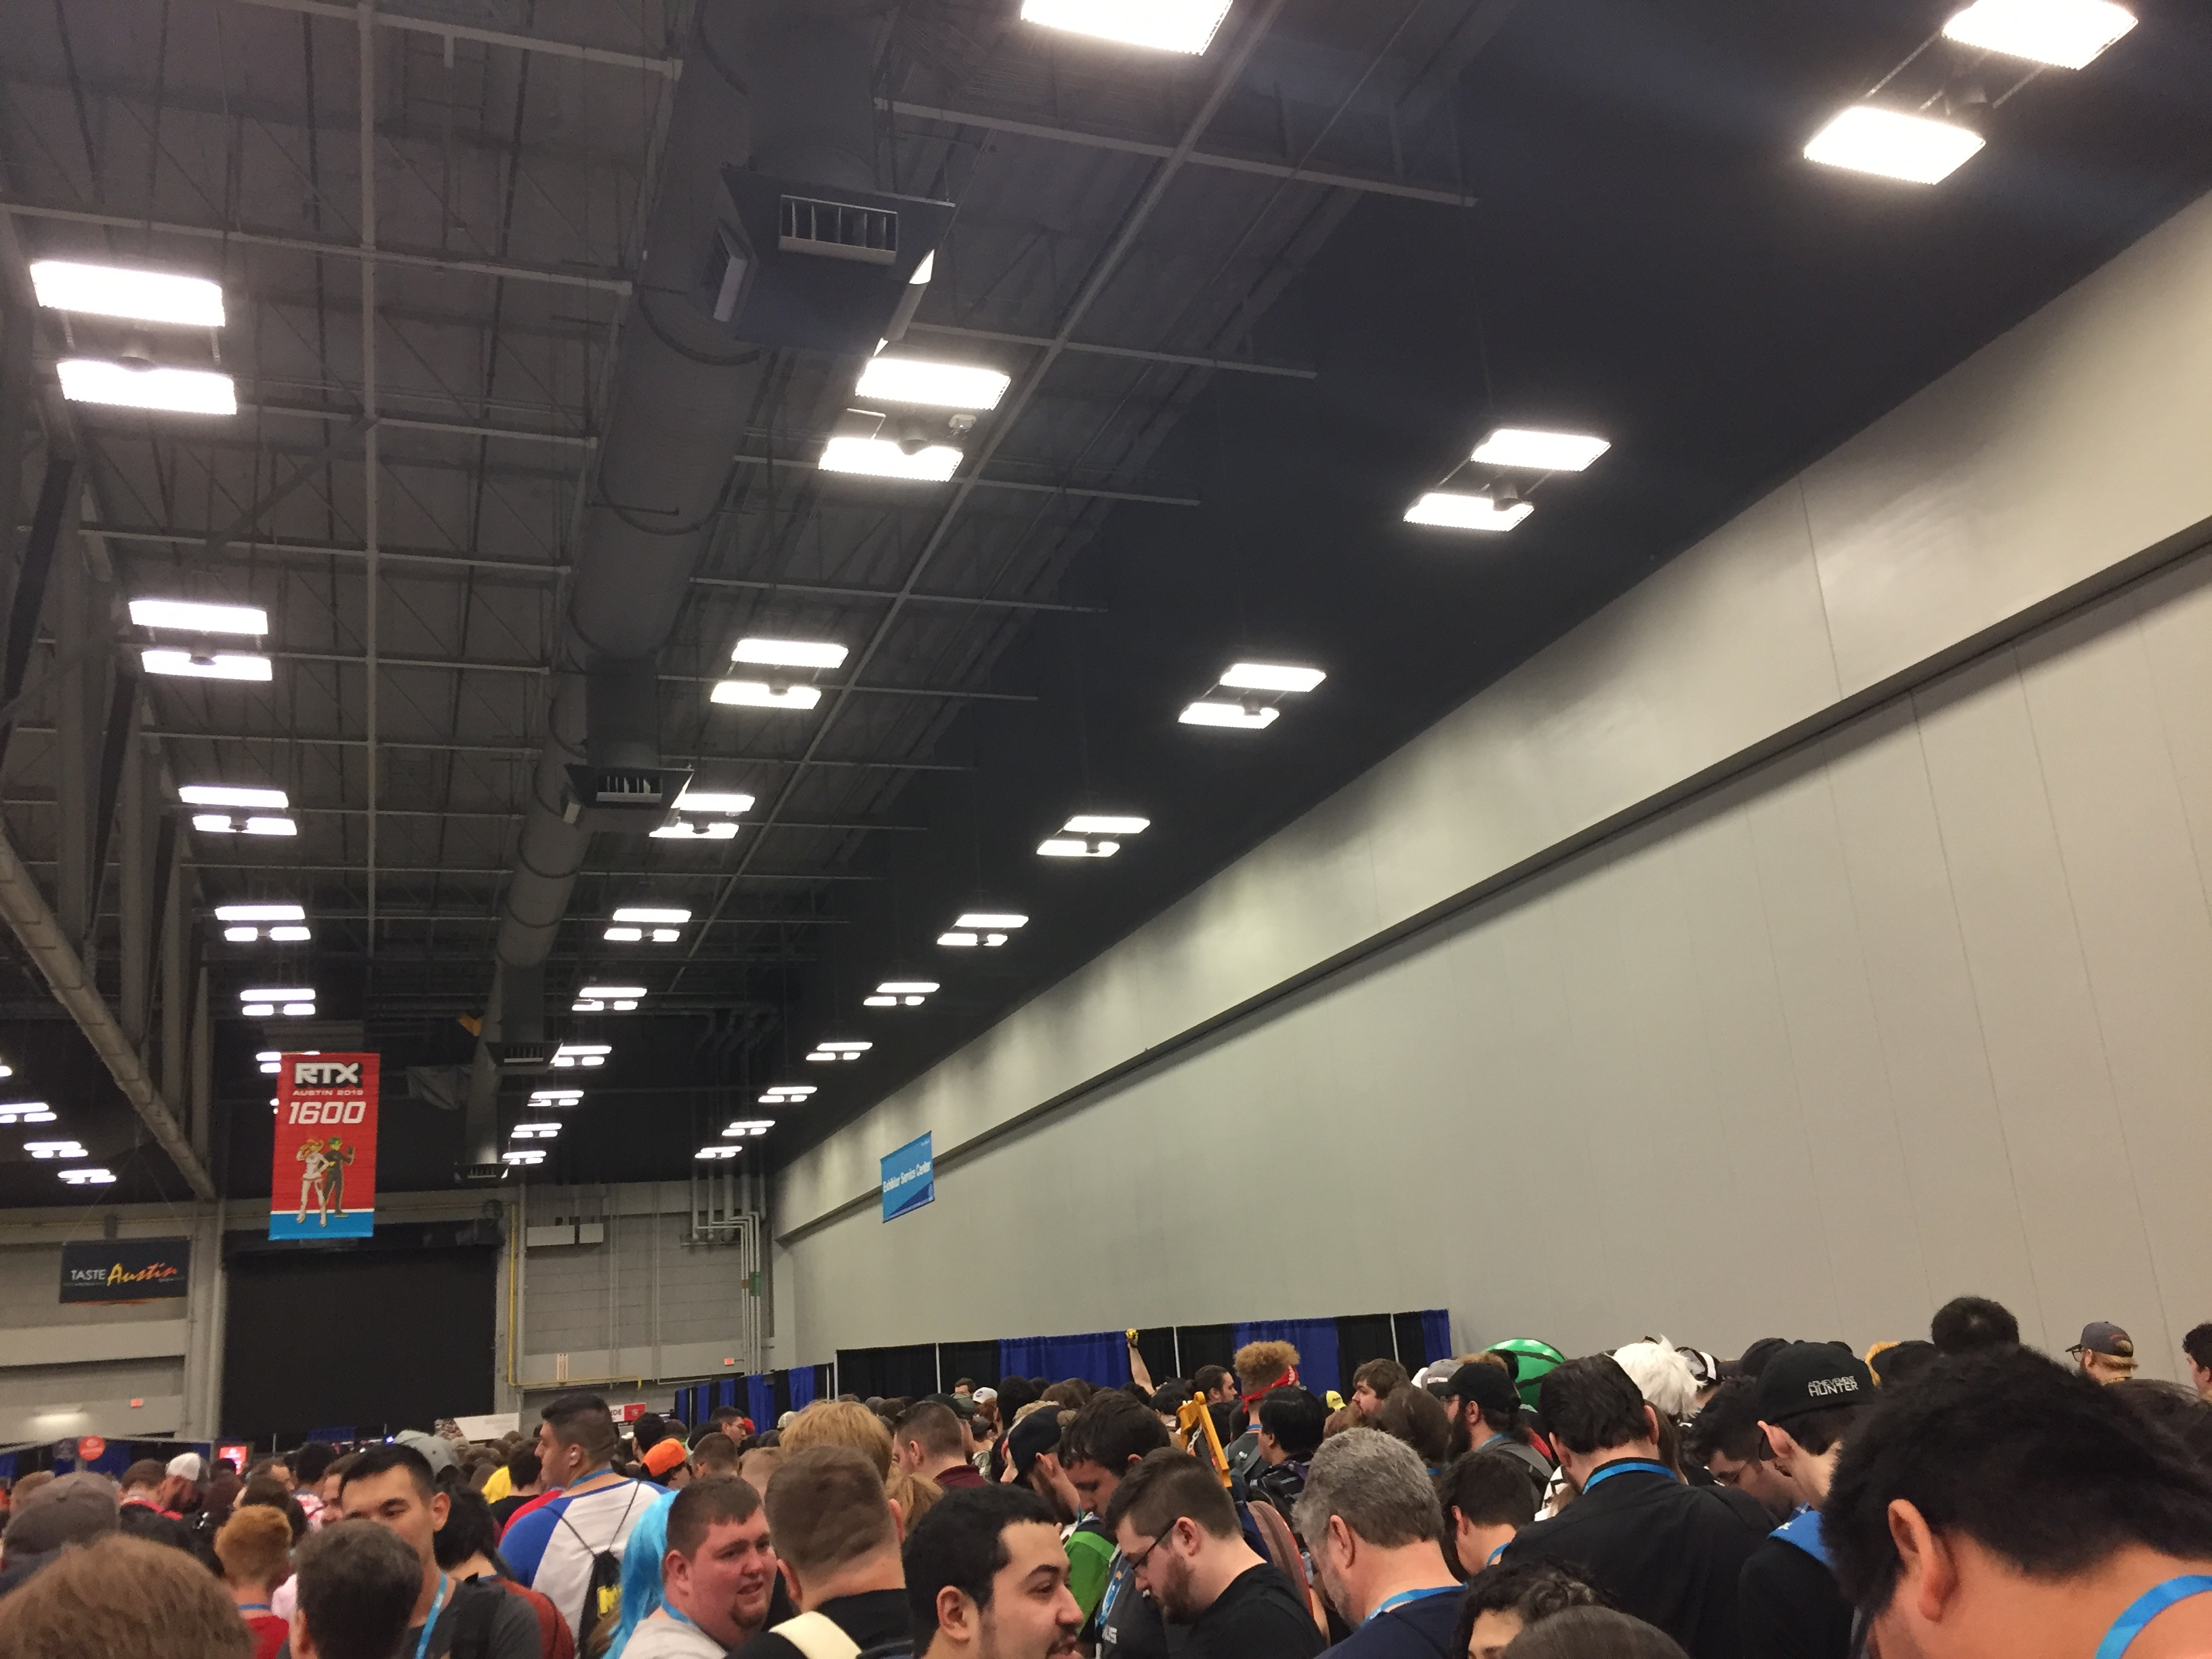 Crowds excited for RTX 2019.